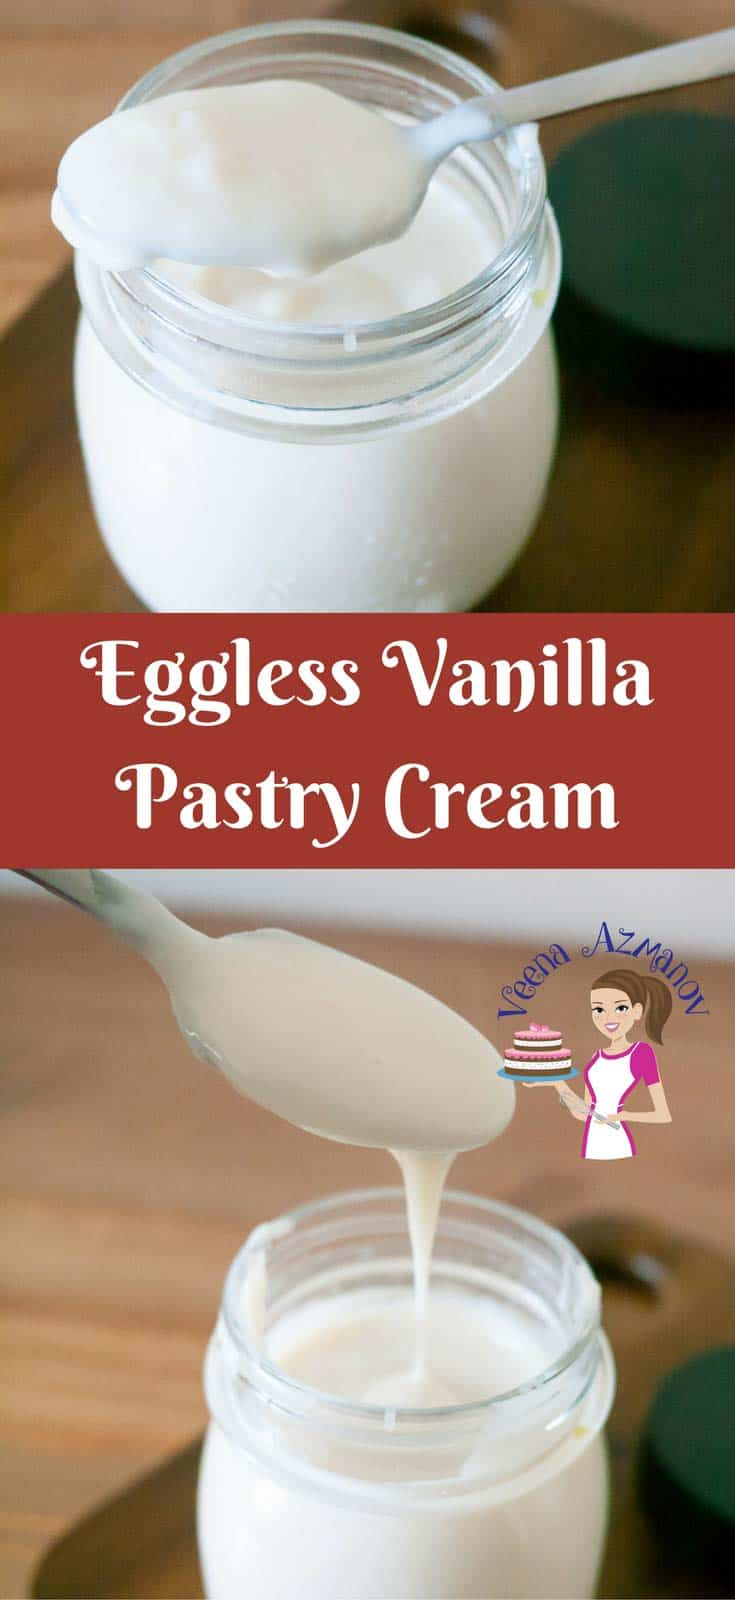 Eggless Vanilla Pastry Cream is a perfect base for many desserts such as fruit tarts, mousses, Bavarian Creams Ice-cream etc. Compared to the Classic made with egg yolks this one is less on the calories and more healthy to indulge in without loosing any of the silky smooth goodness.